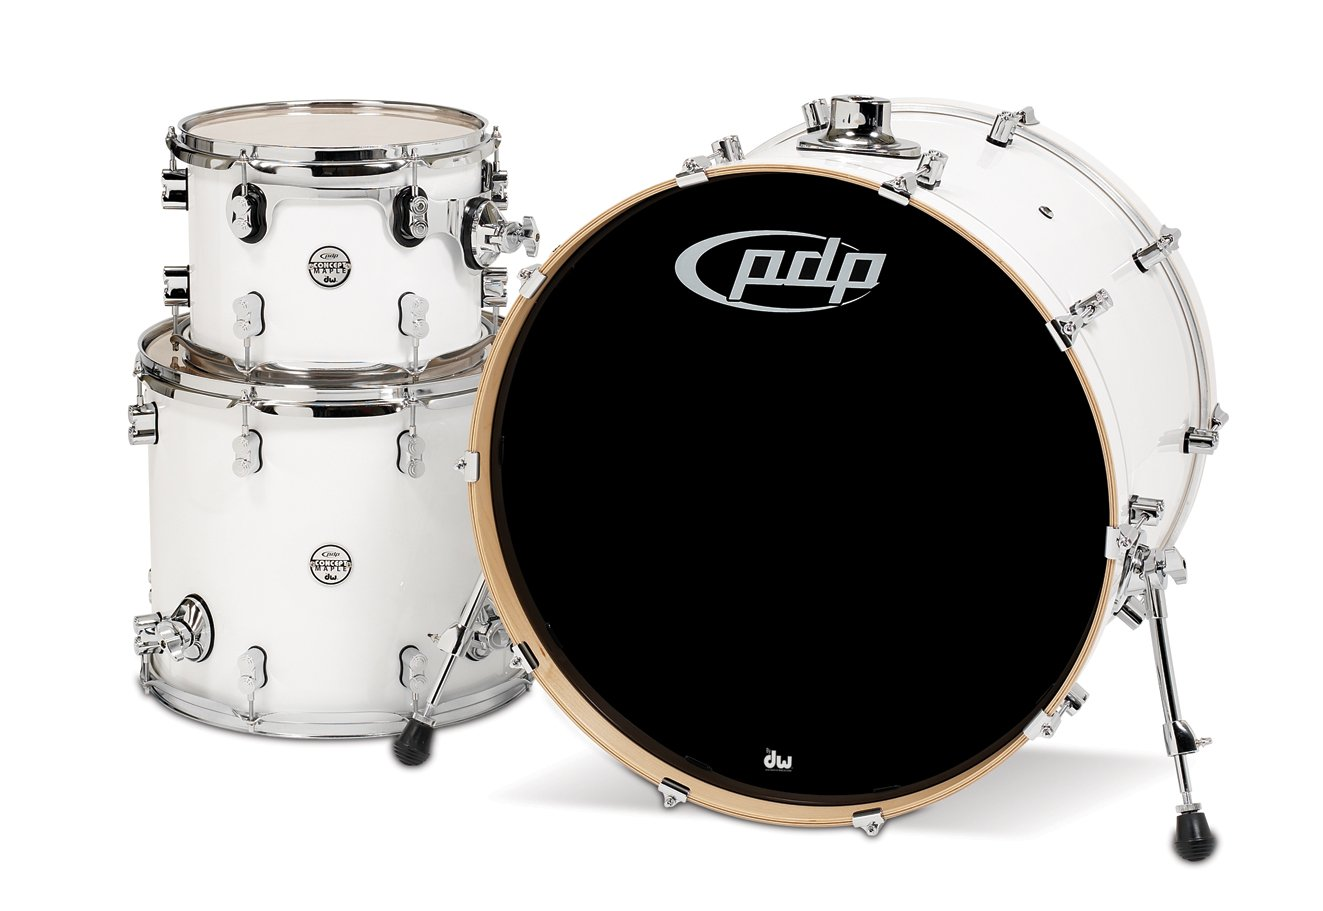 Pacific Drums PDCM2413PW 3-Piece Drumset with Chrome Hardware - Pearlescent White